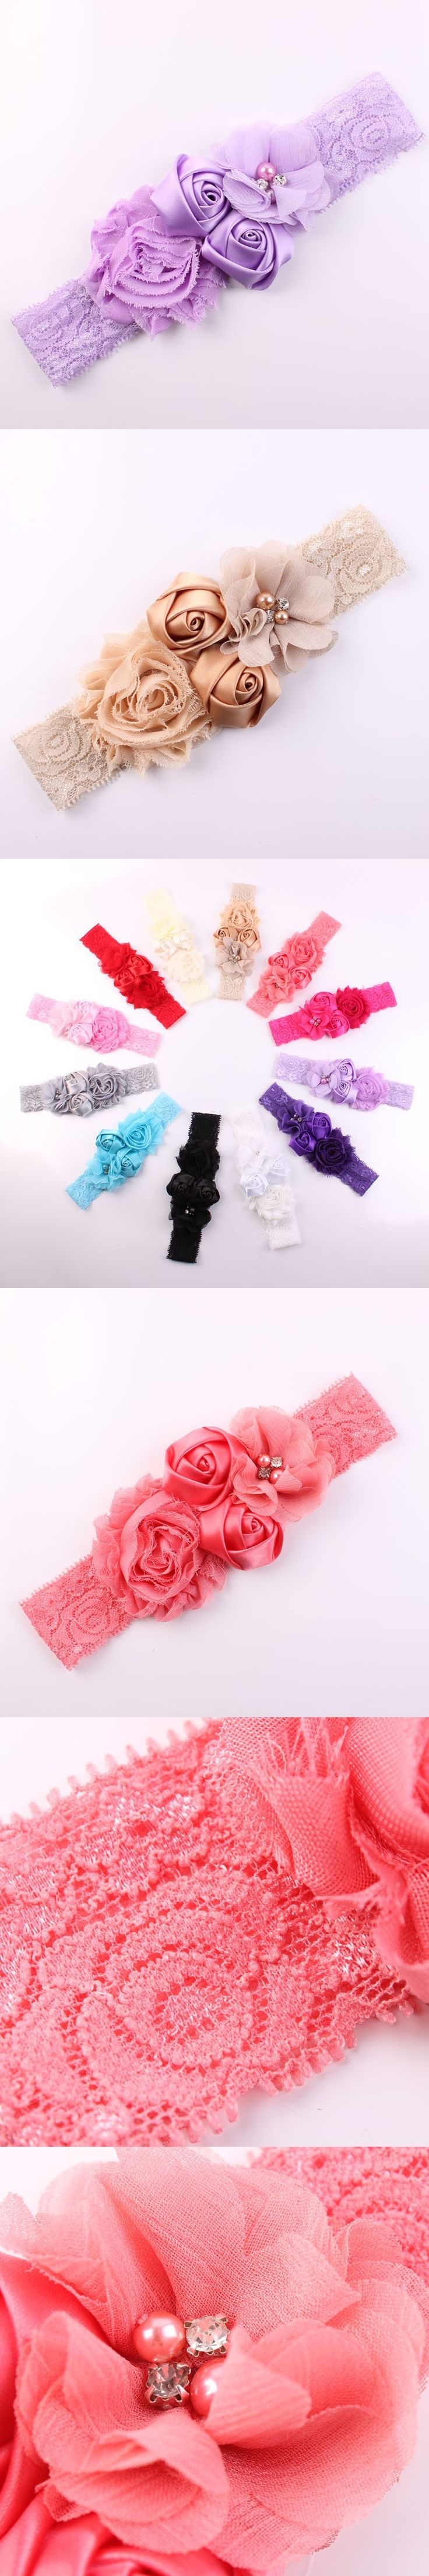 1Pc Shabby Lace Baby Headband Chic Flower Girls Headband Hair Bow Flower Headband for Baby Girl Children Kids Hair Accessories $3.06